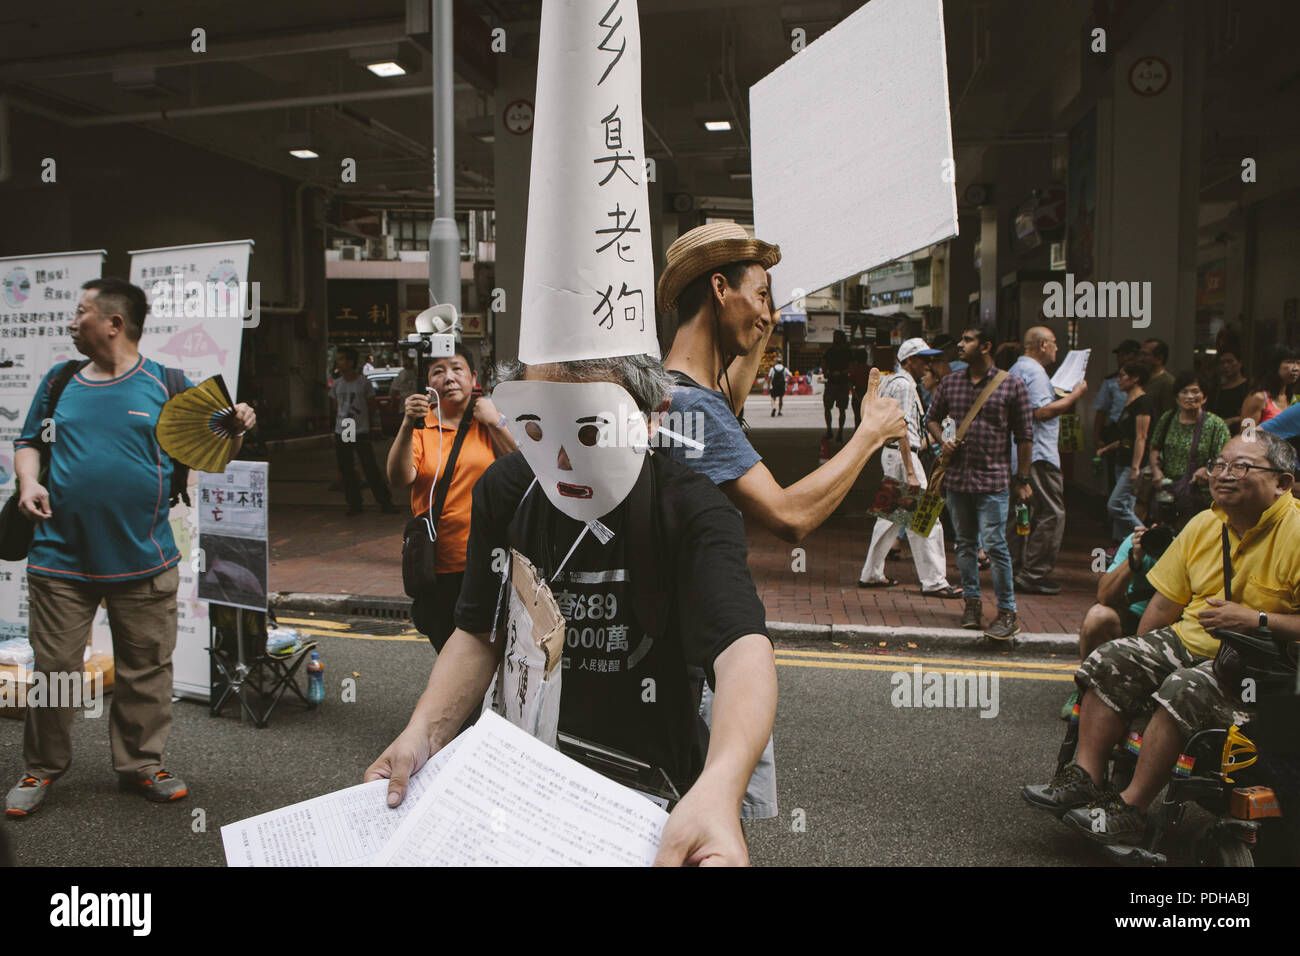 July 1, 2017 - Hong Kong, Hong Kong - A masked protester seen handing out fliers..Thousands came together and demonstrated to mark the 20th anniversary of the Handover from Britain to China, Hong Kong's return to China on July 1st 1997. The protestors marched through sun and rain from Victoria Park to Admiralty, taking a stand on a variety of human-rights-related causes. (Credit Image: © Viola Gaskell/SOPA Images via ZUMA Wire) - Stock Image